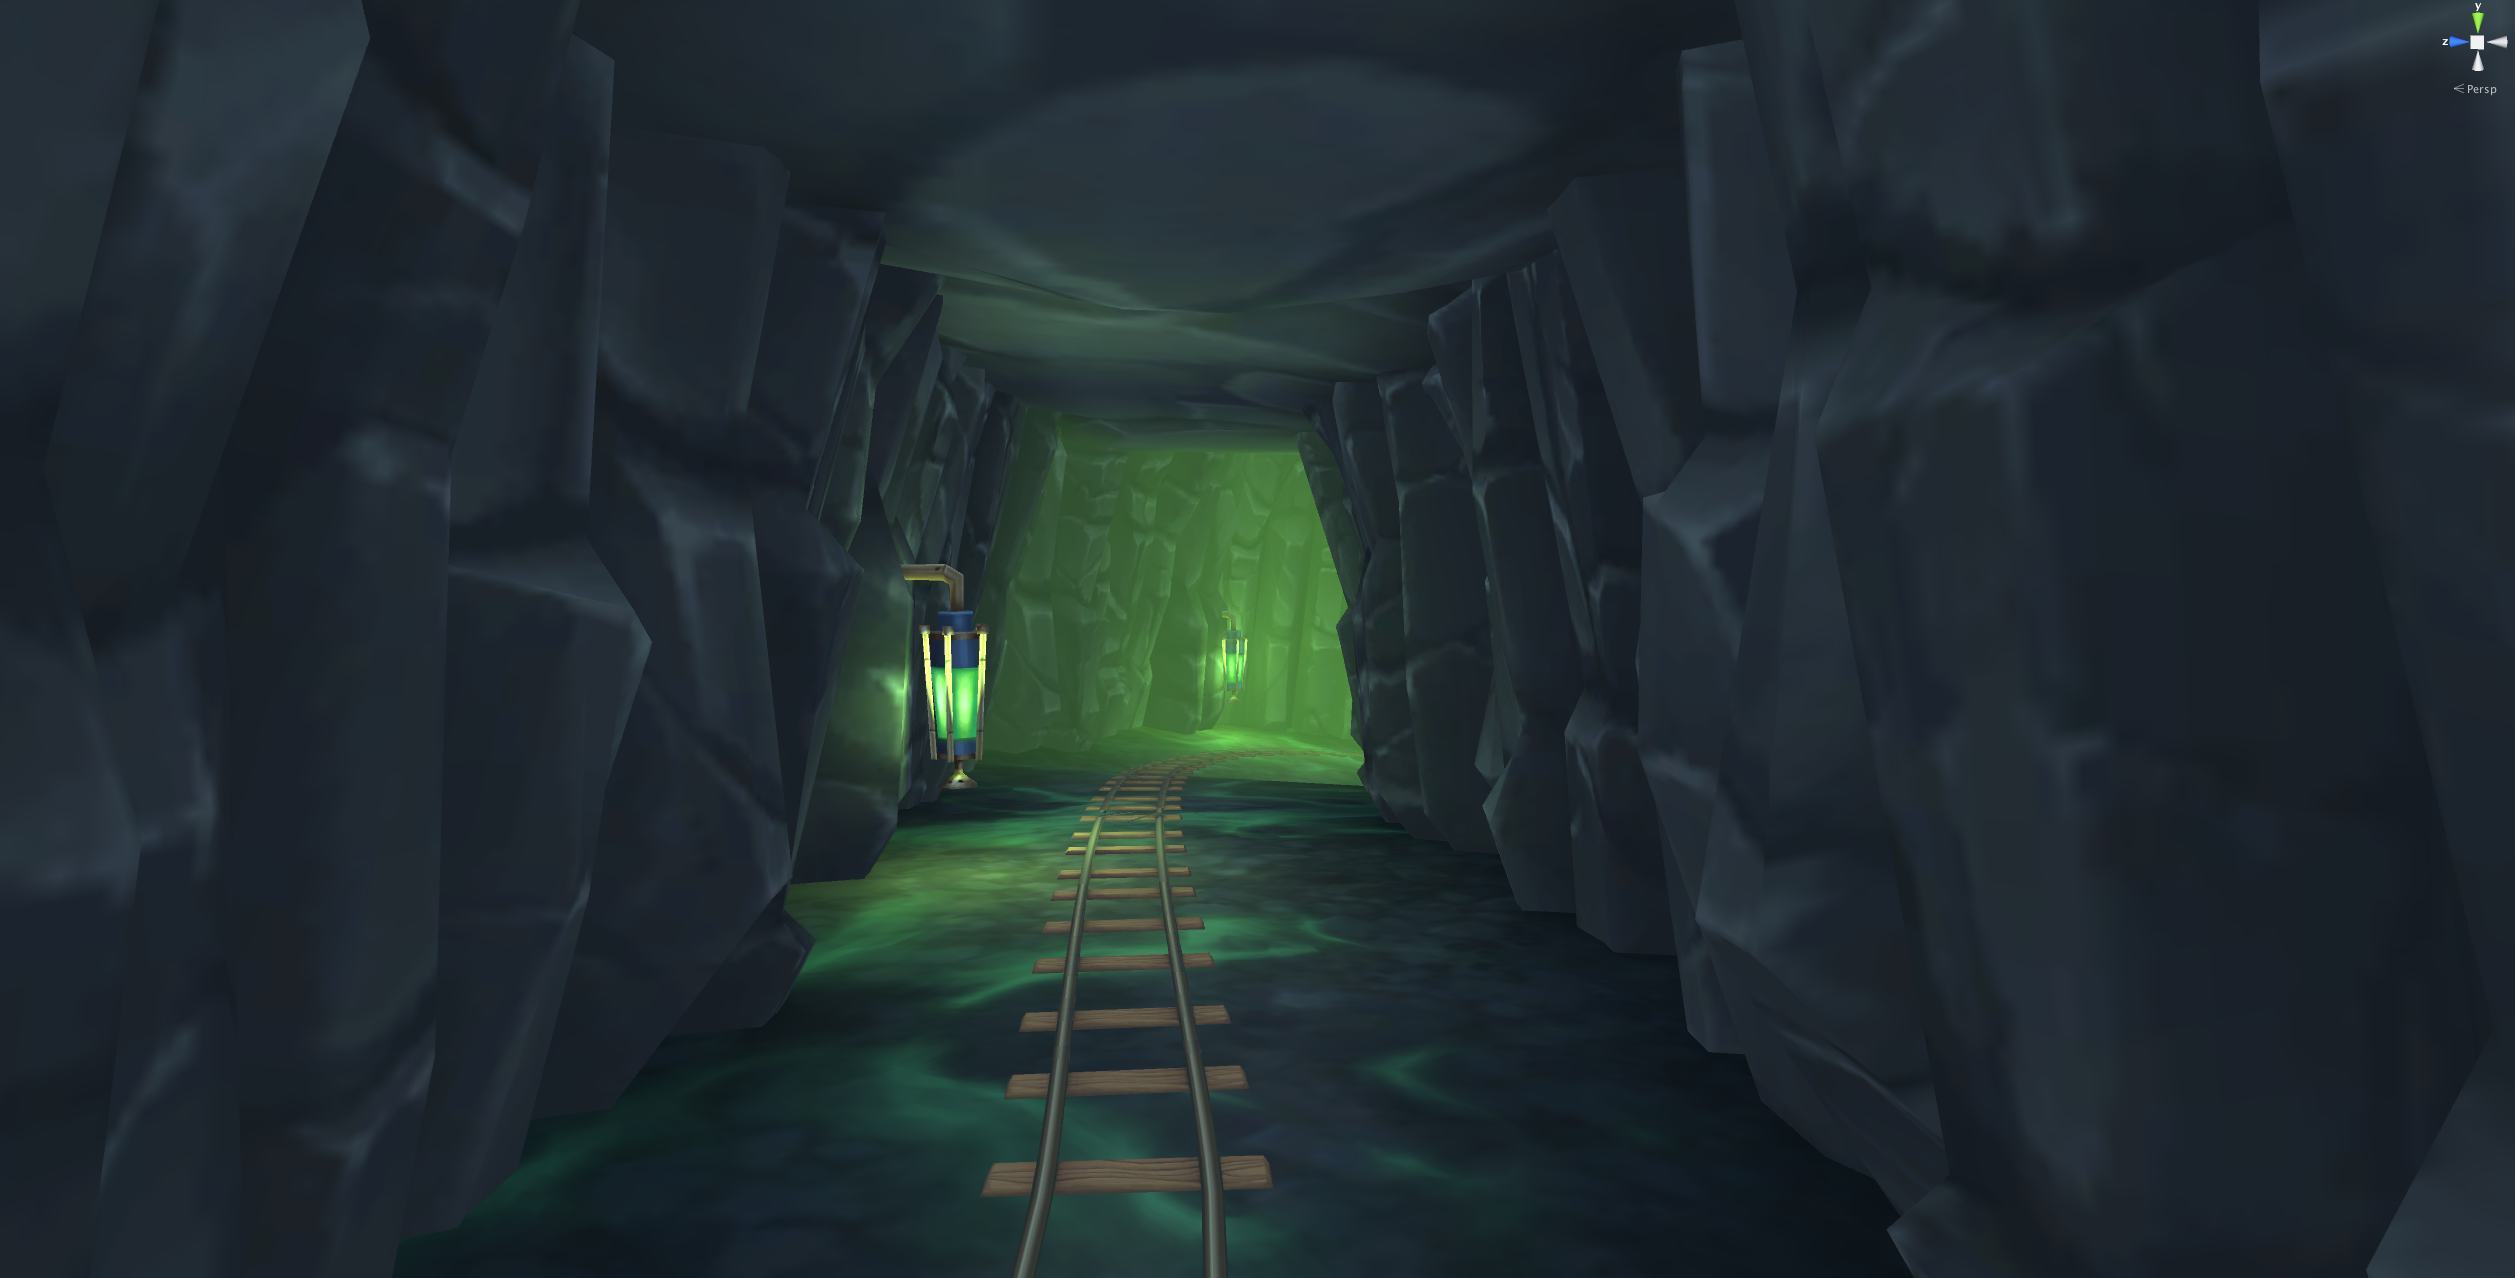 Isle-Tunnels-with-Lamps